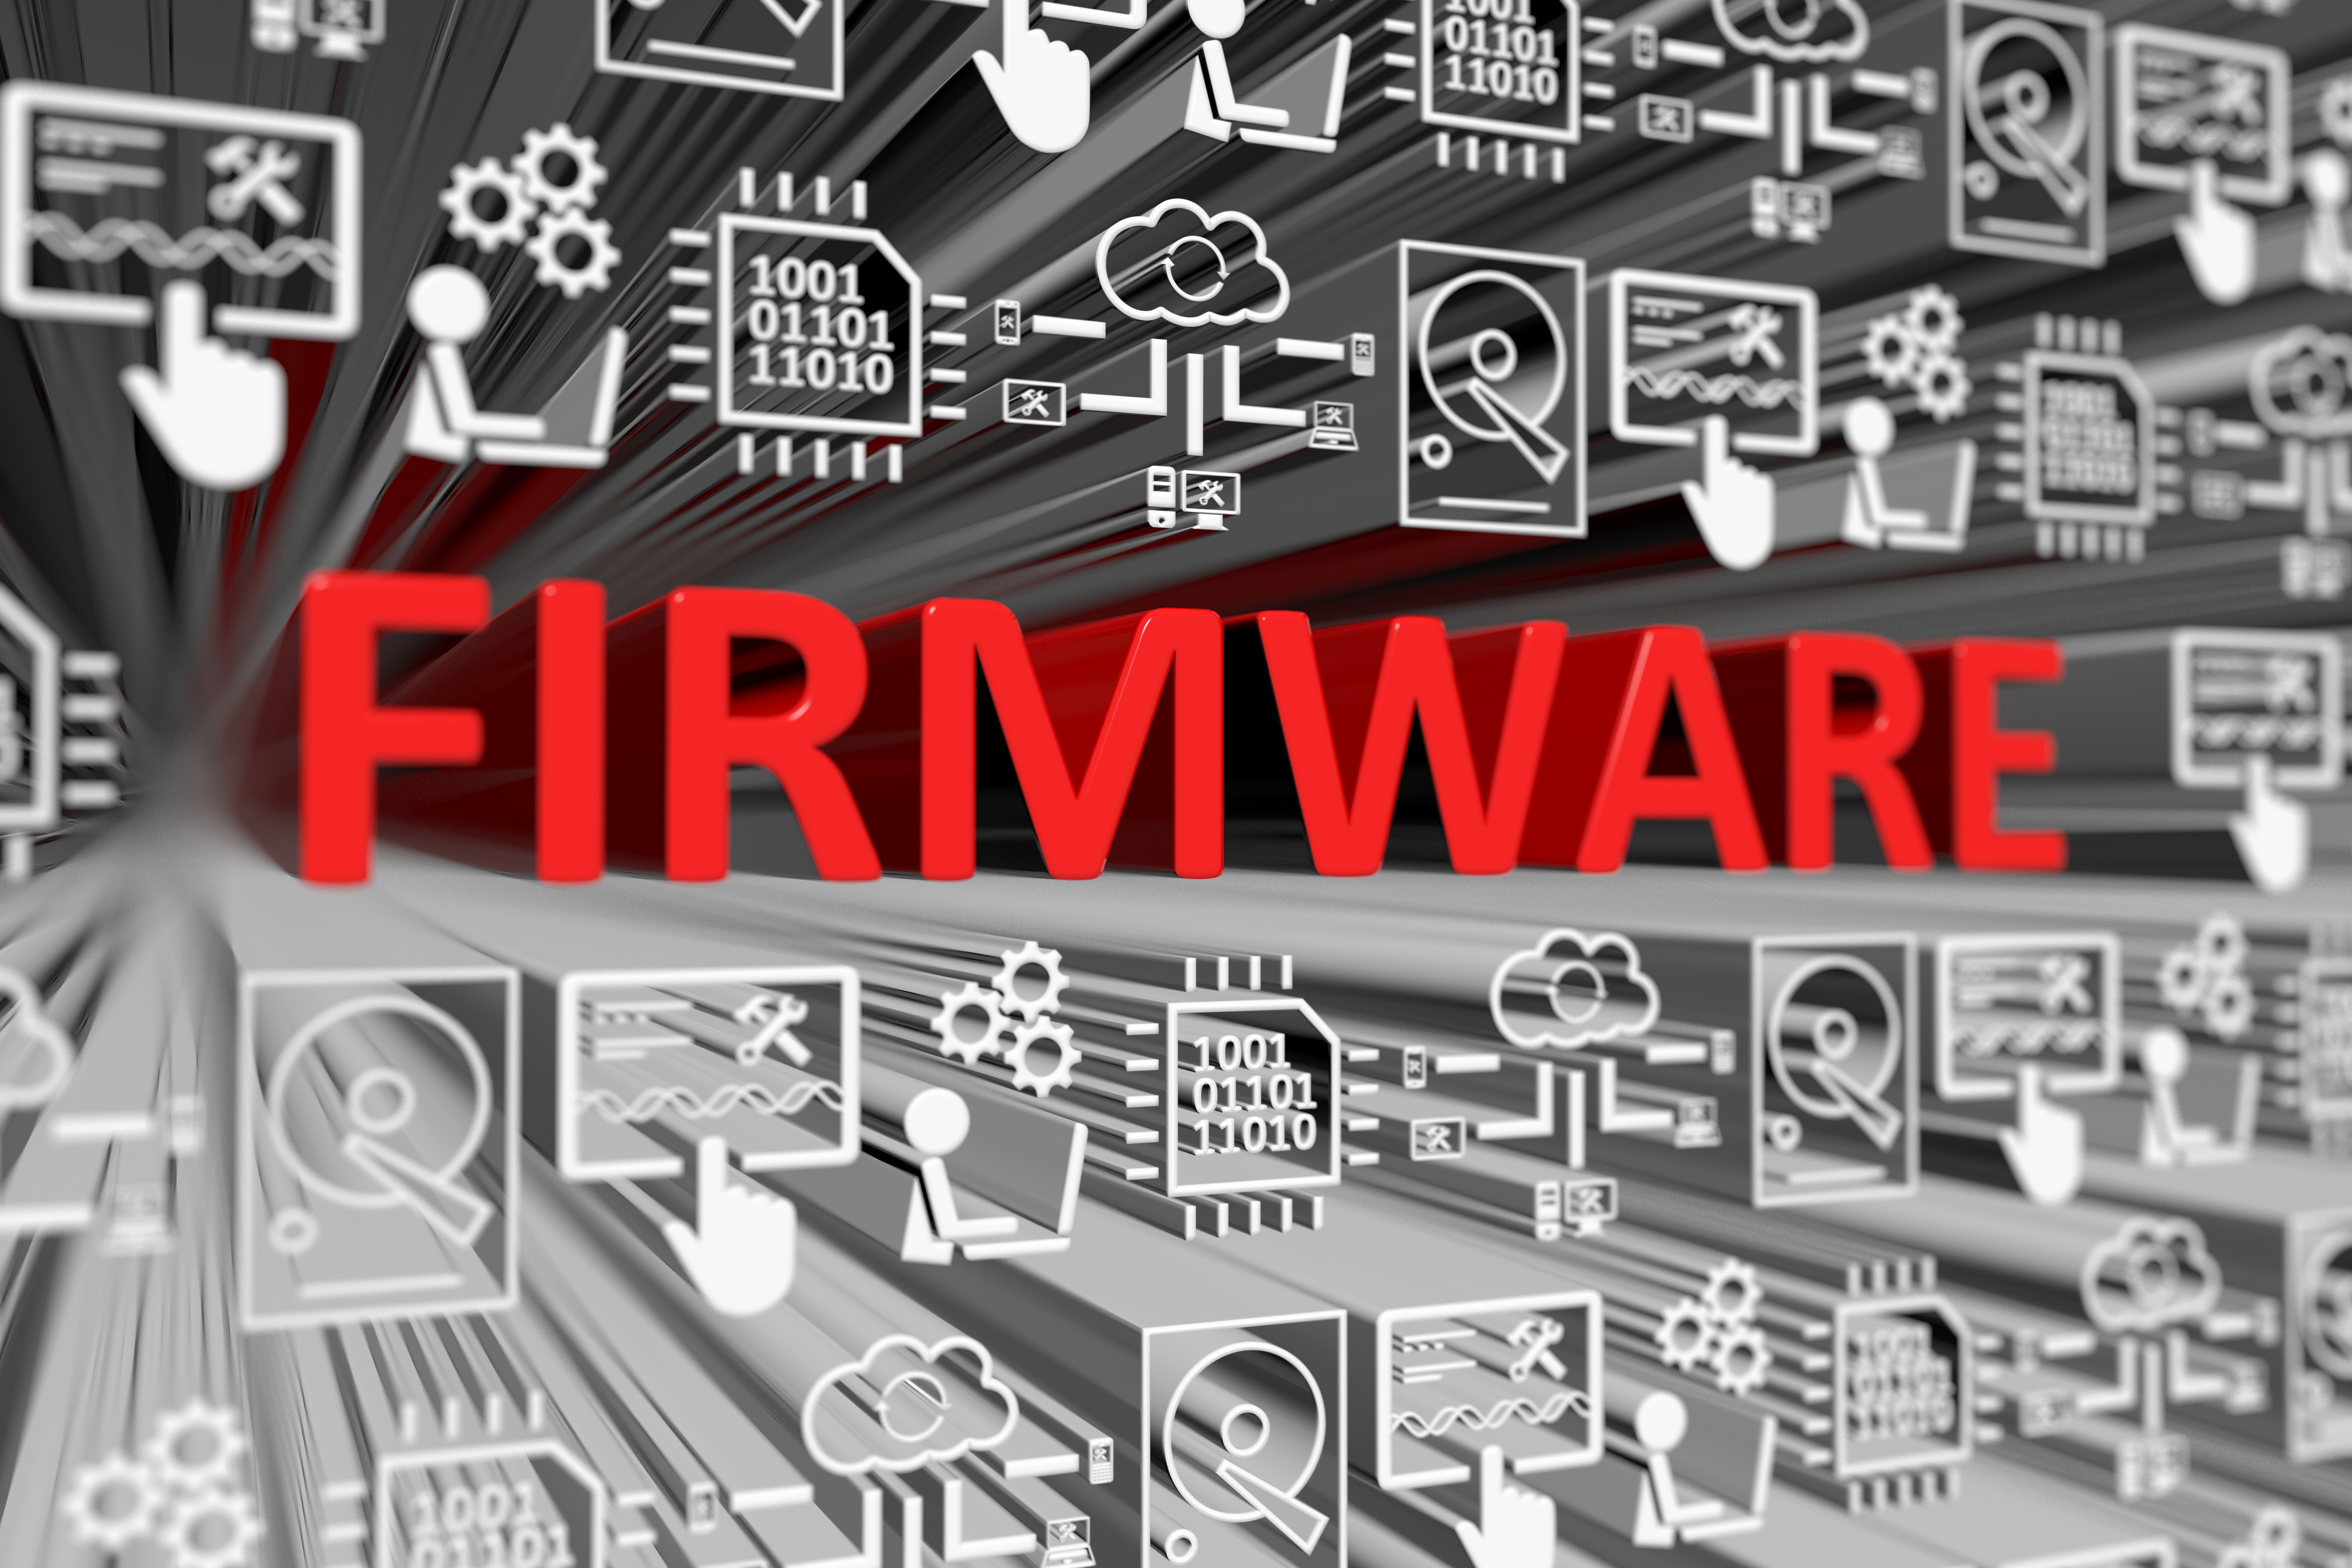 How Does Firmware Work?